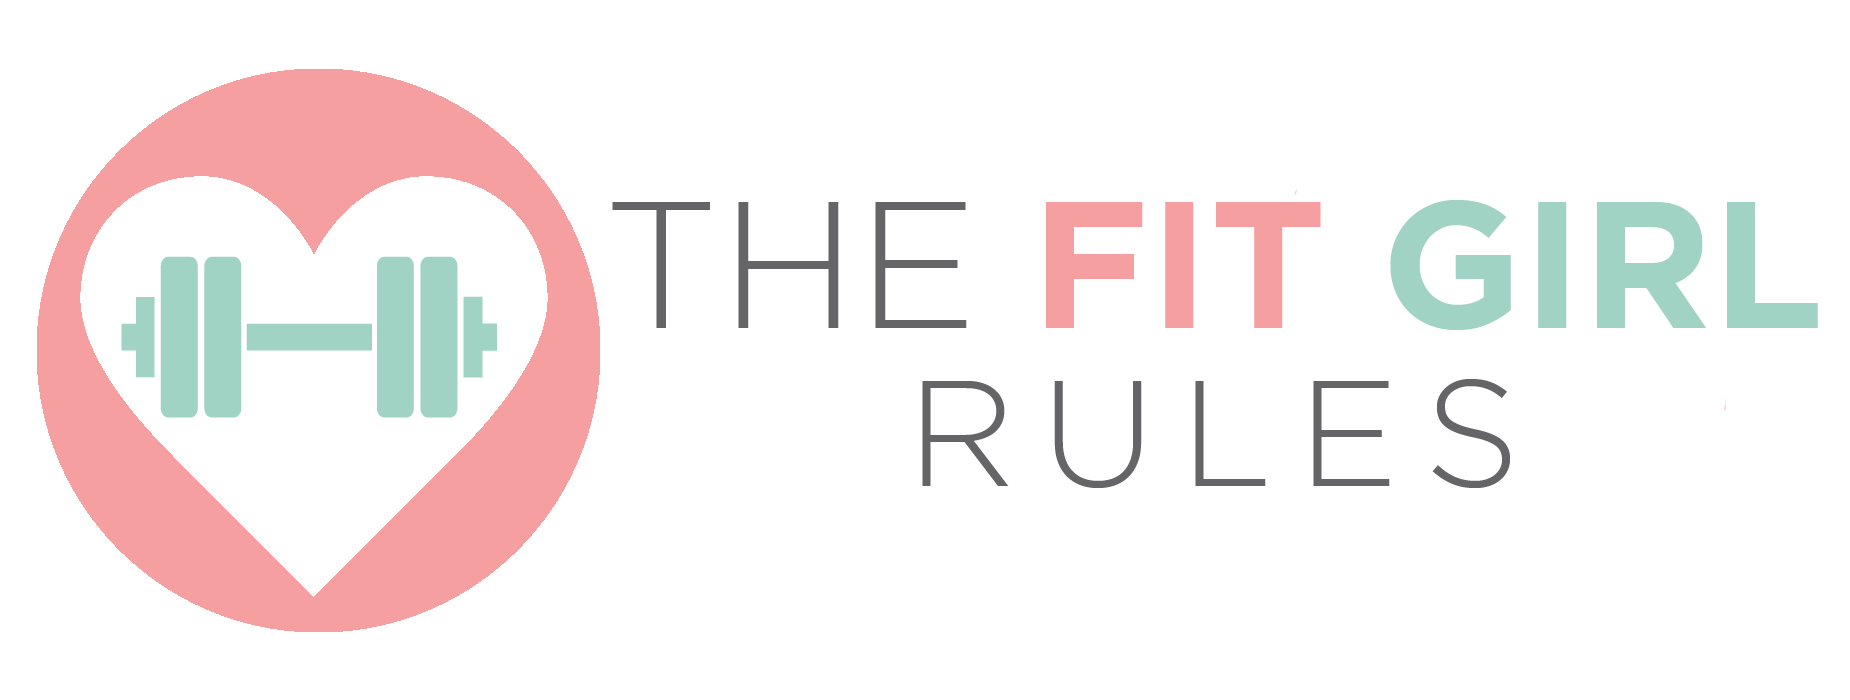 The Fit Girl Rules